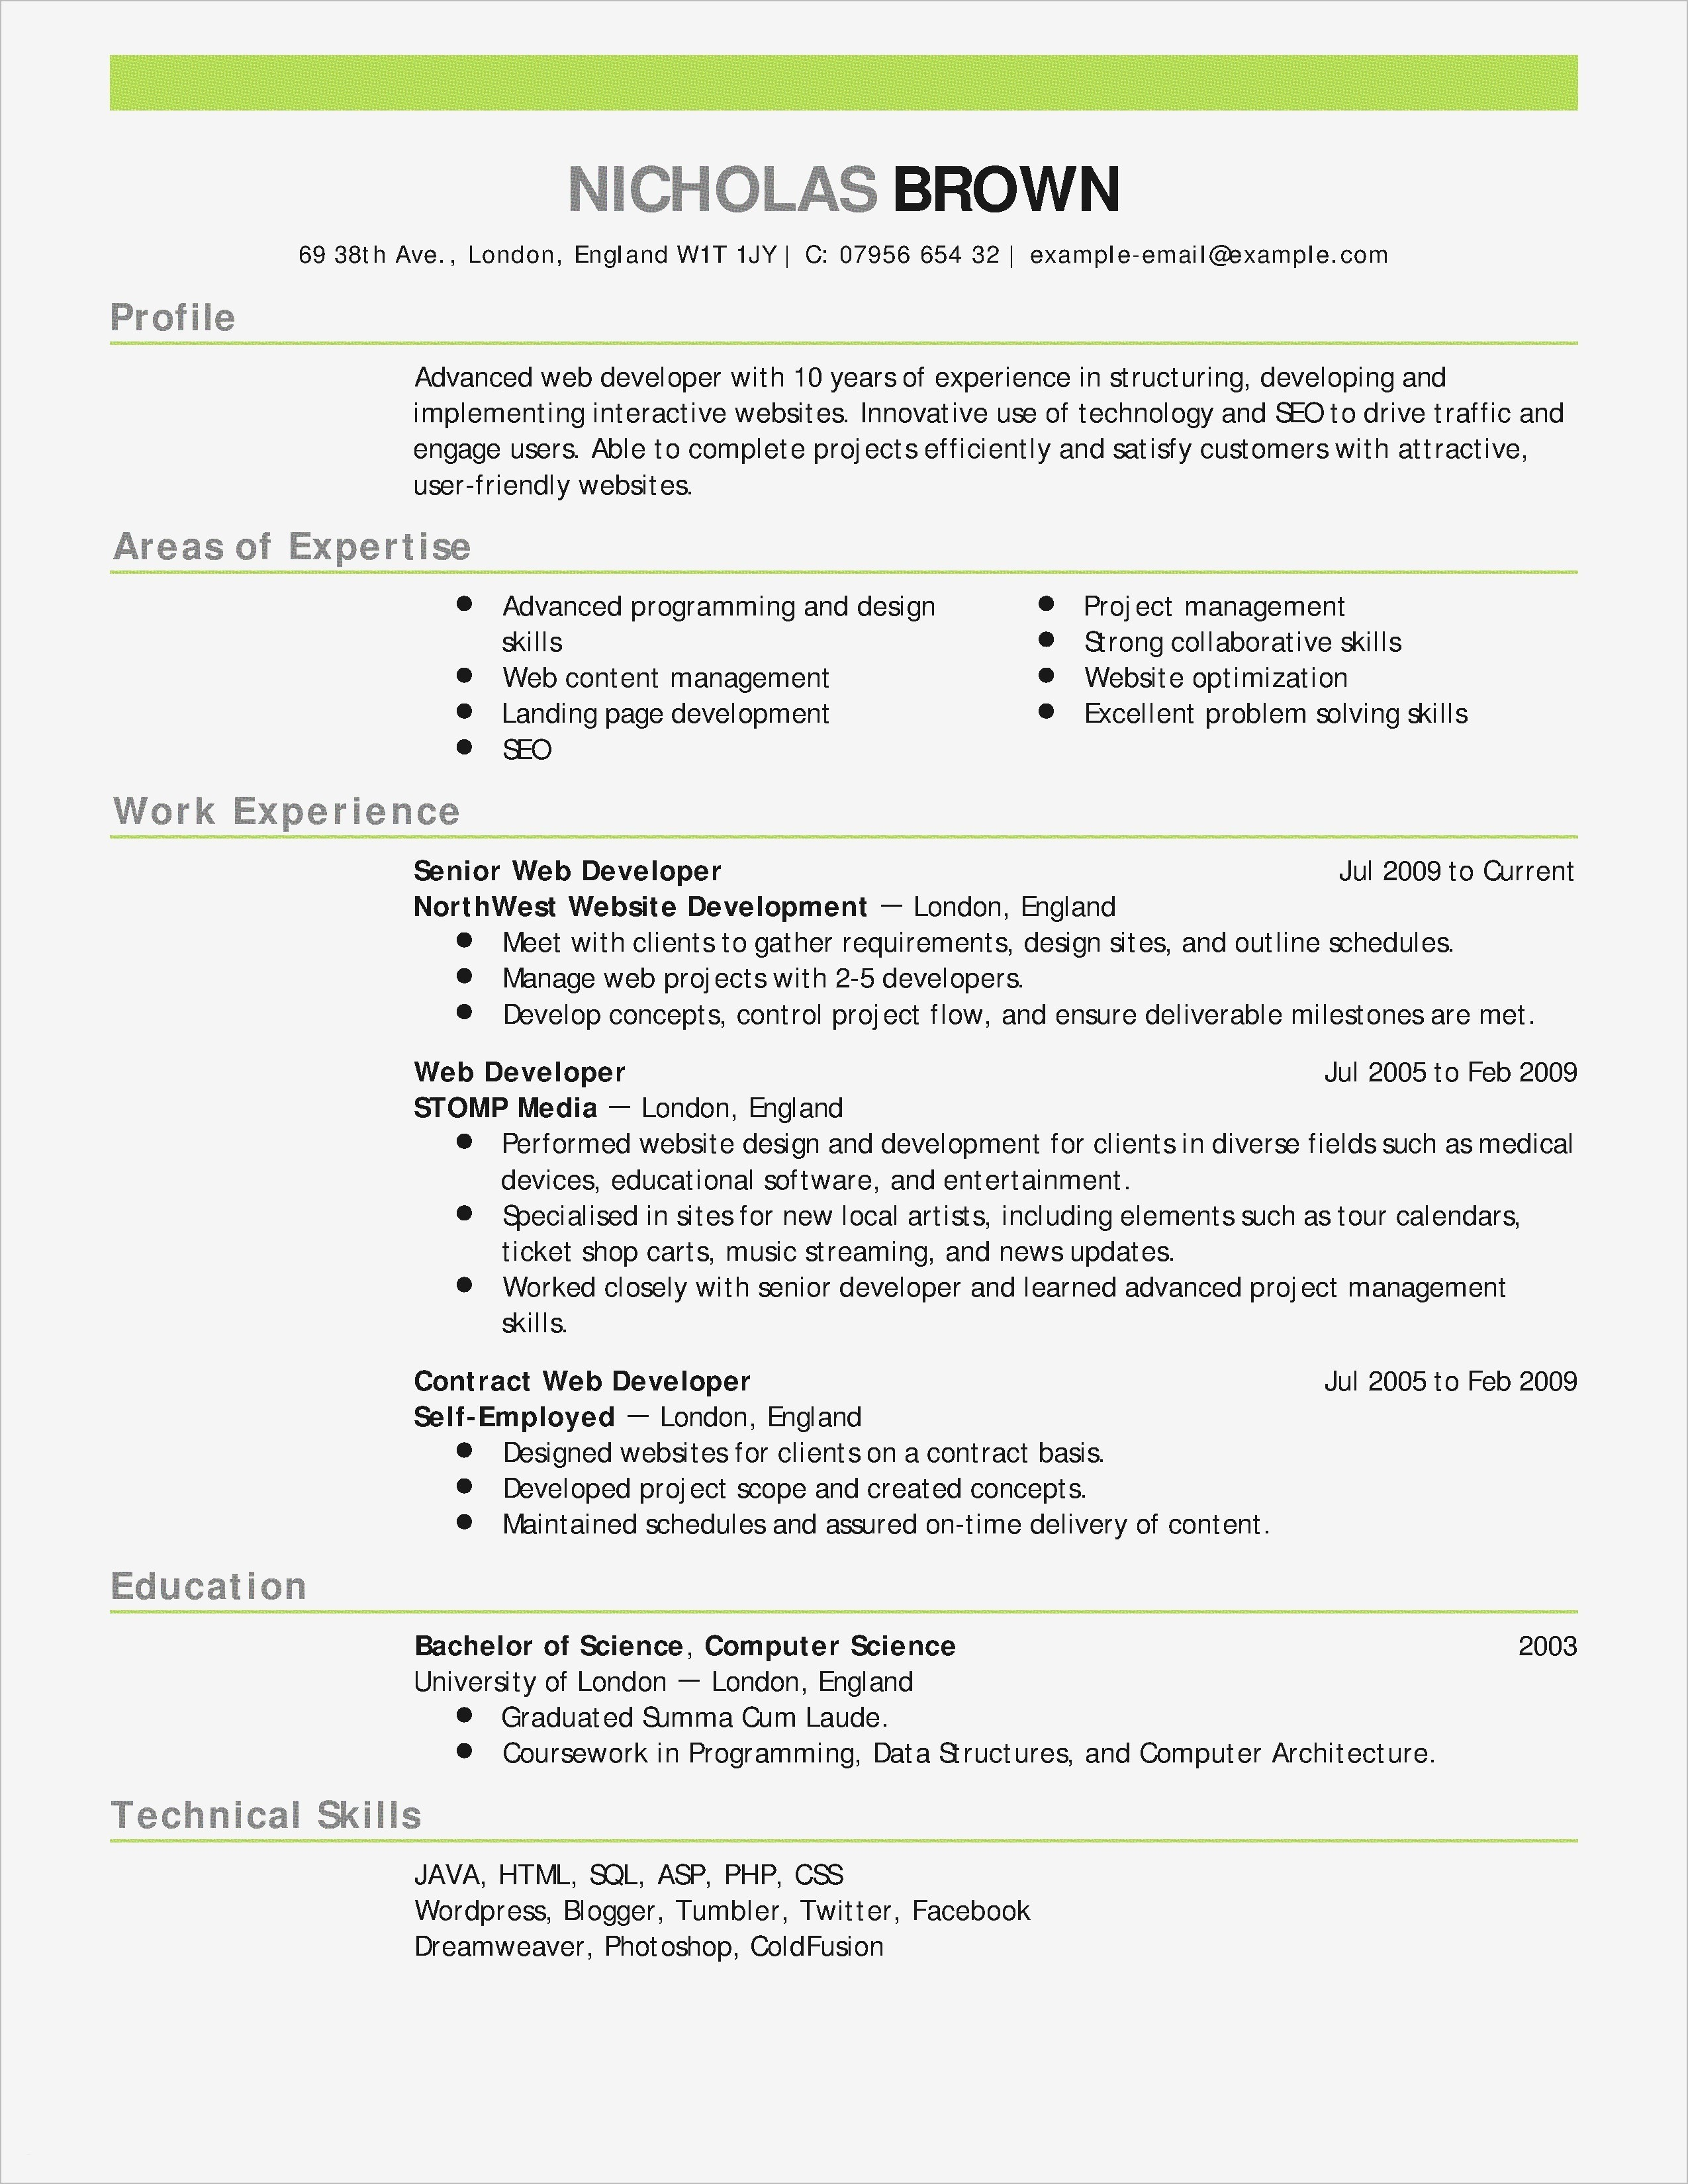 Security Cover Letter Template - New Letter Template Fresh Resume Letter Best formatted Resume 0d